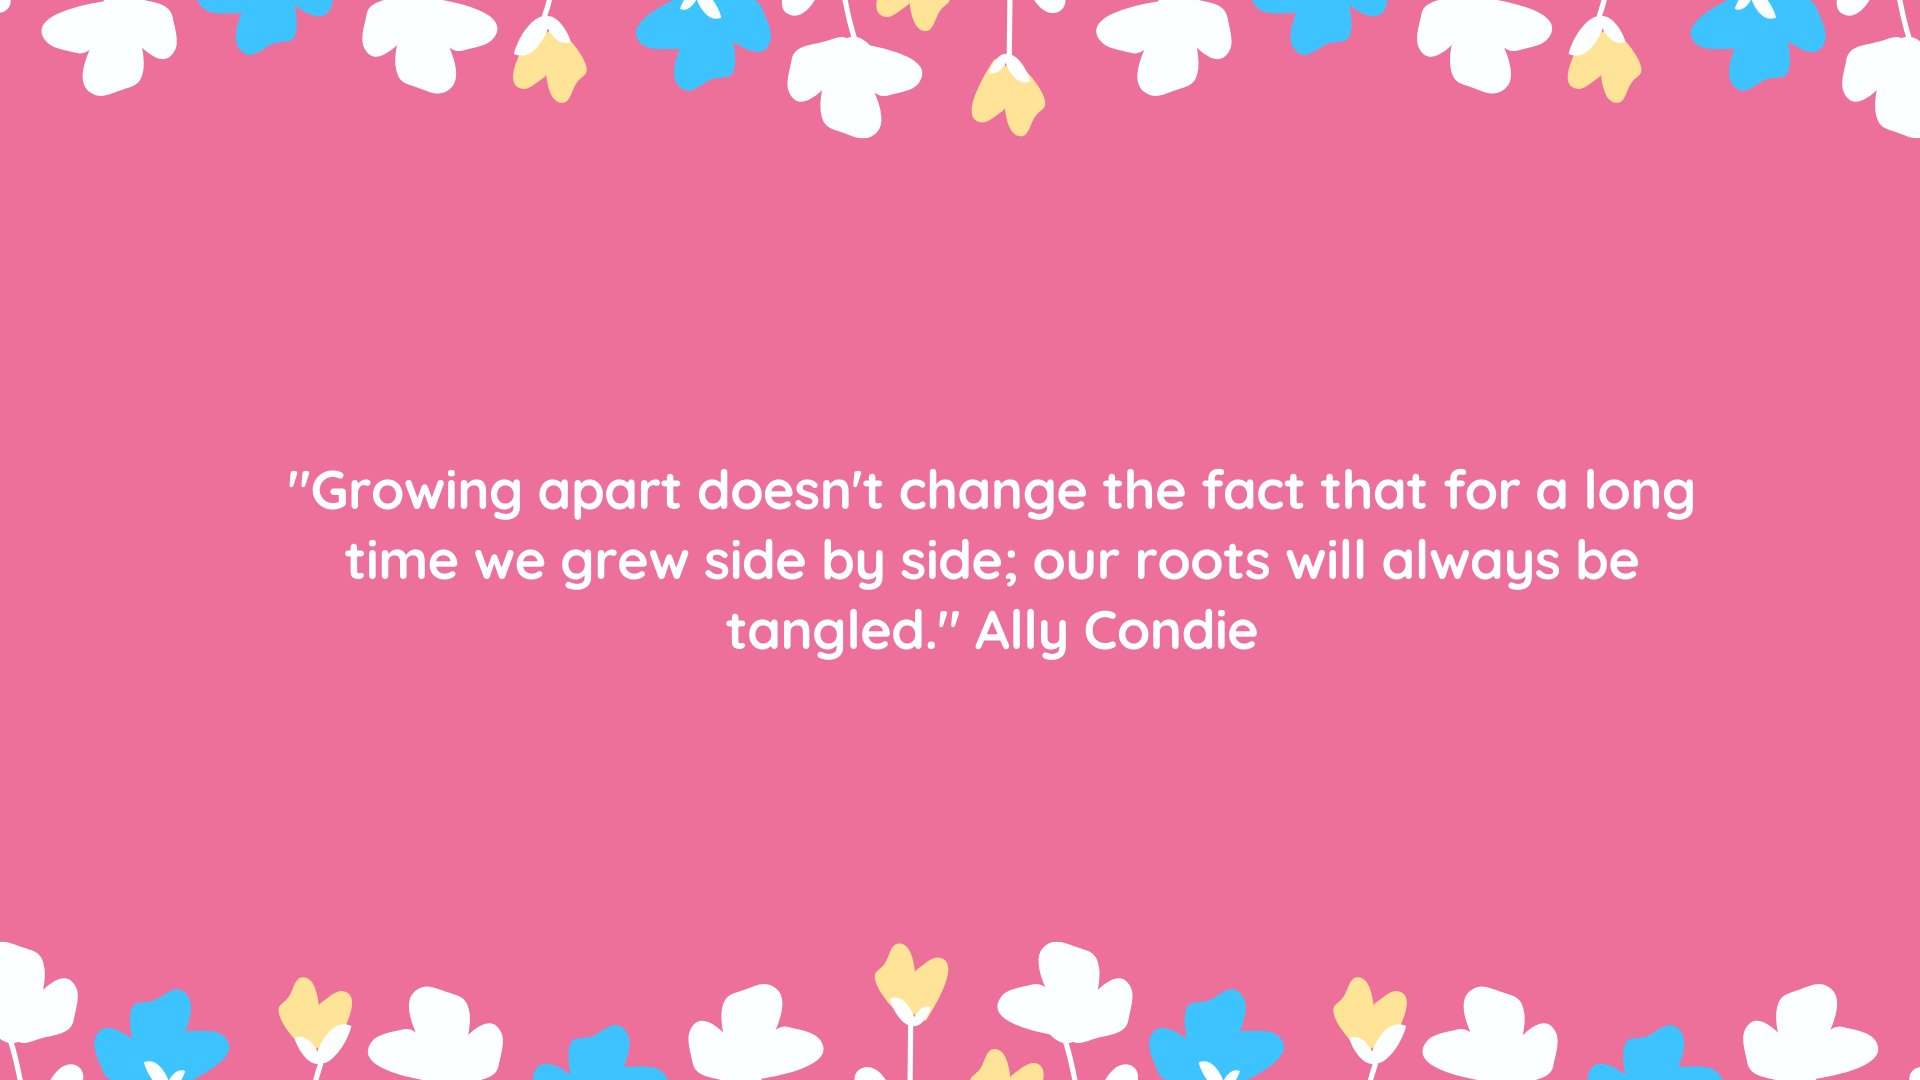 """Growing apart doesn't change the fact that for a long time we grew side by side; our roots will always be tangled."" Ally Condie"